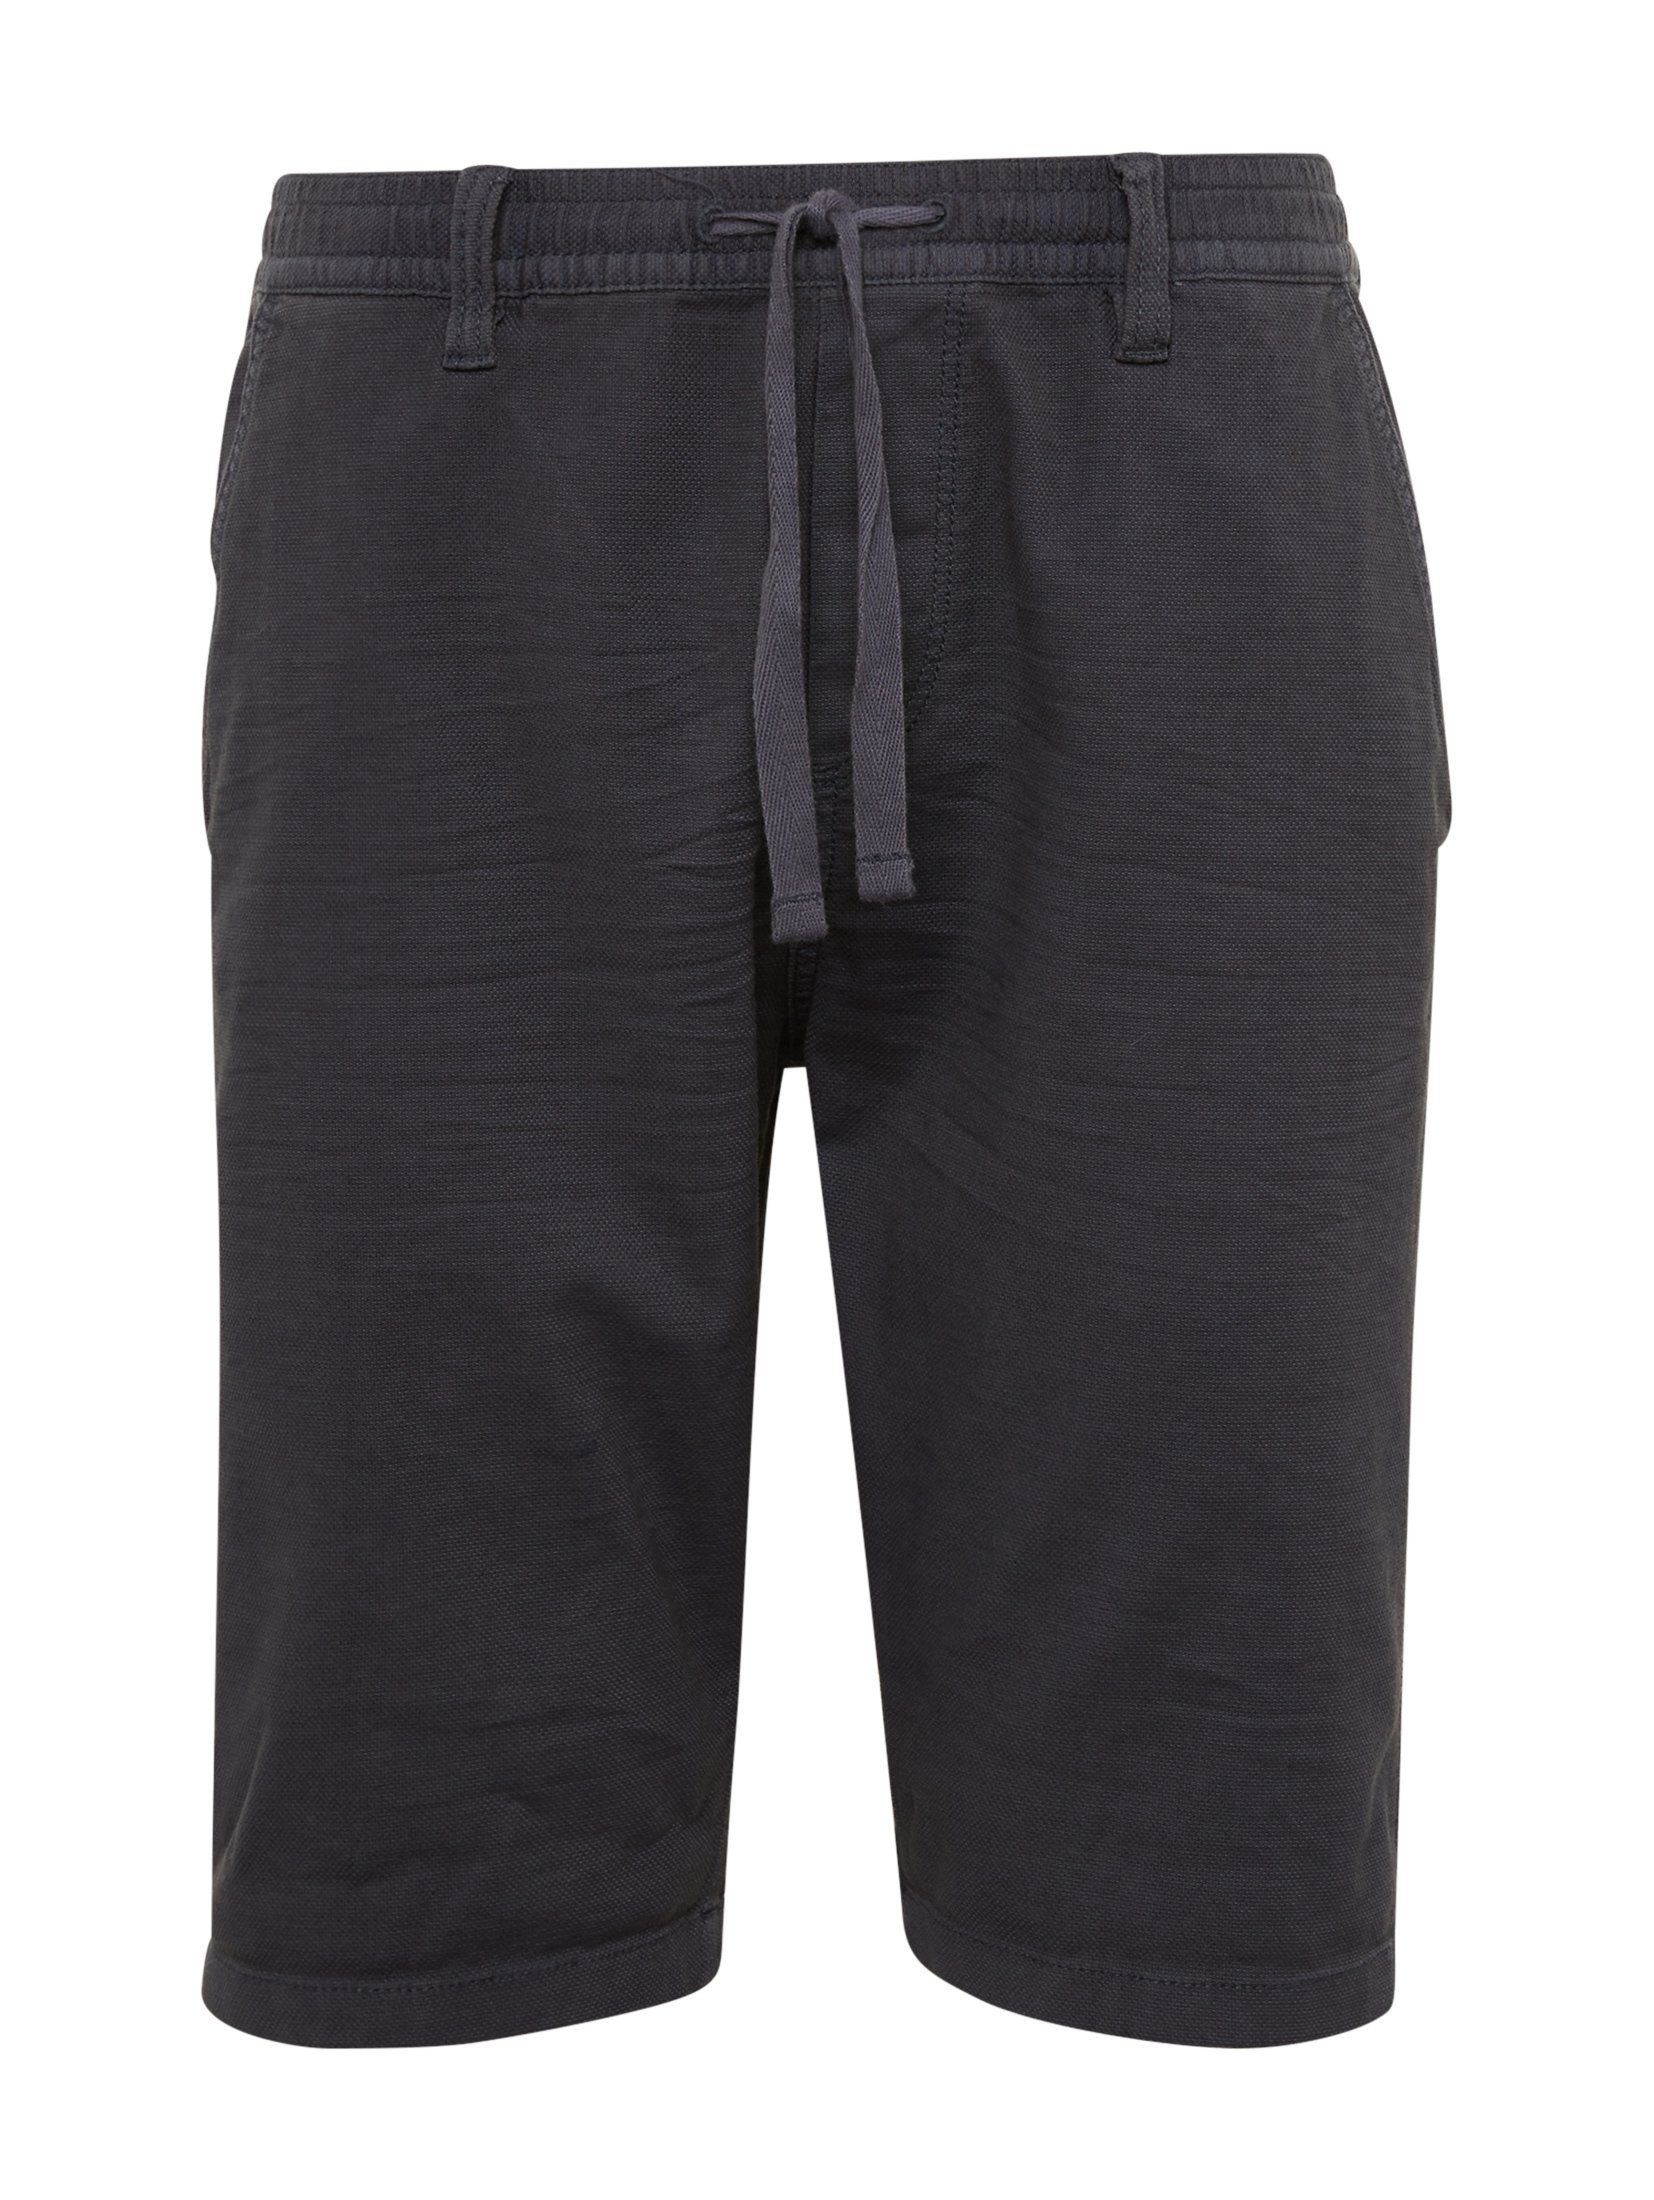 TOM TAILOR Bermudas »Curt Tapered Shorts«